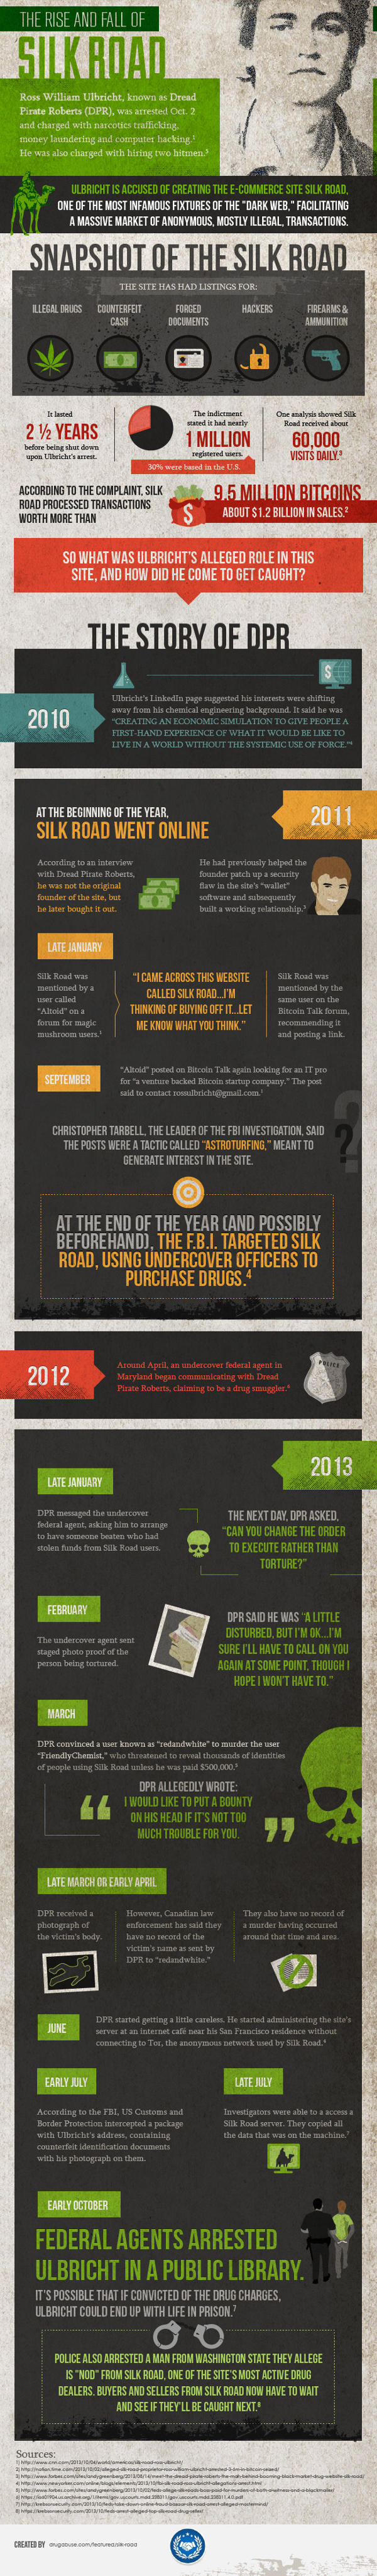 Silk Road. Dread Pirate Roberts. Infographic